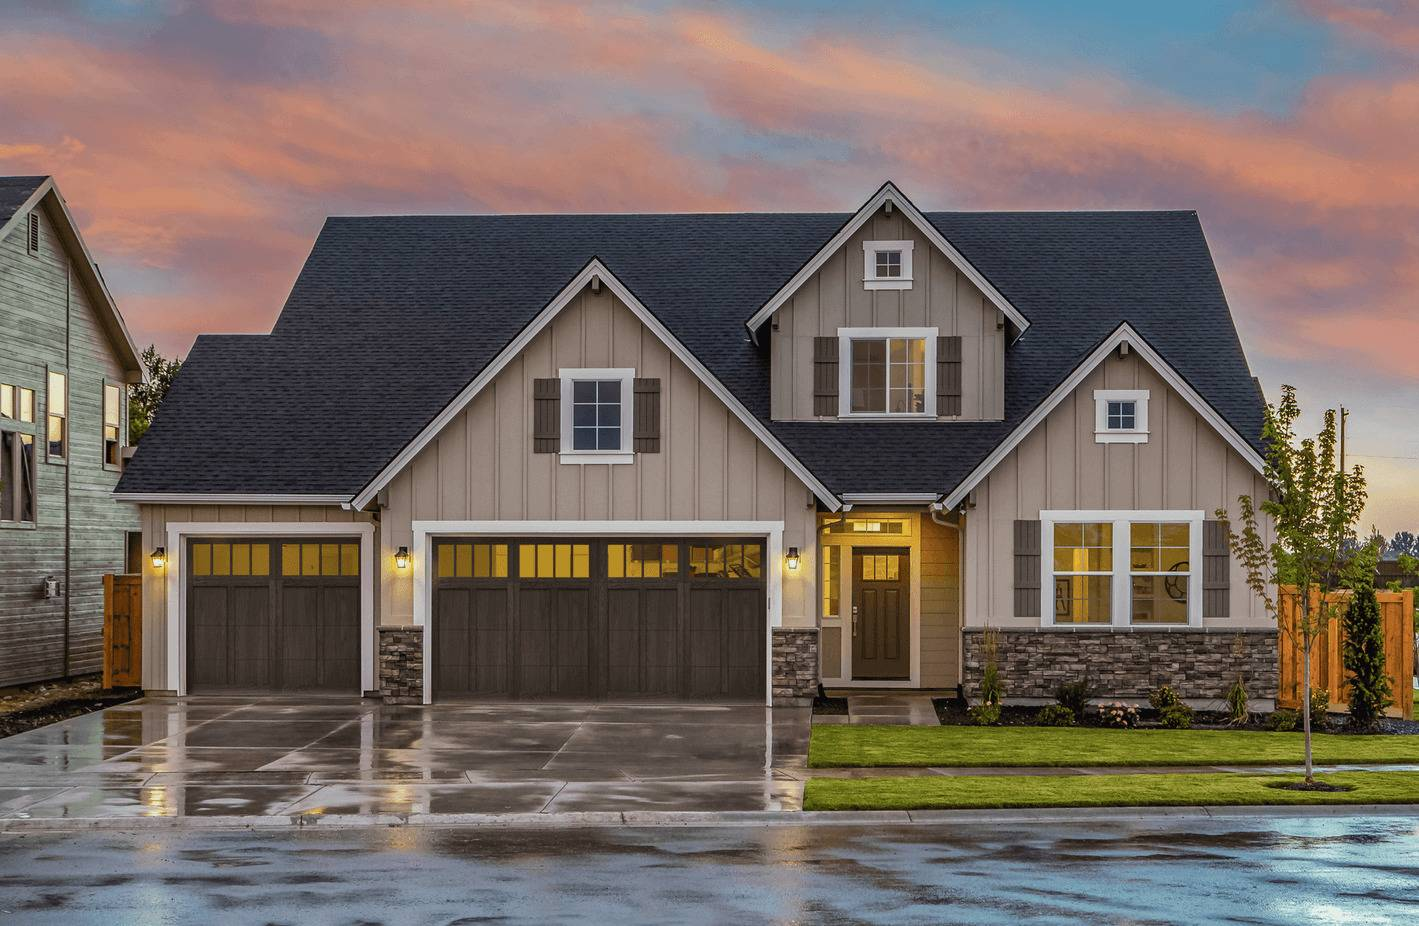 Shoreline Garage Door - Garage Door Services, Inc.